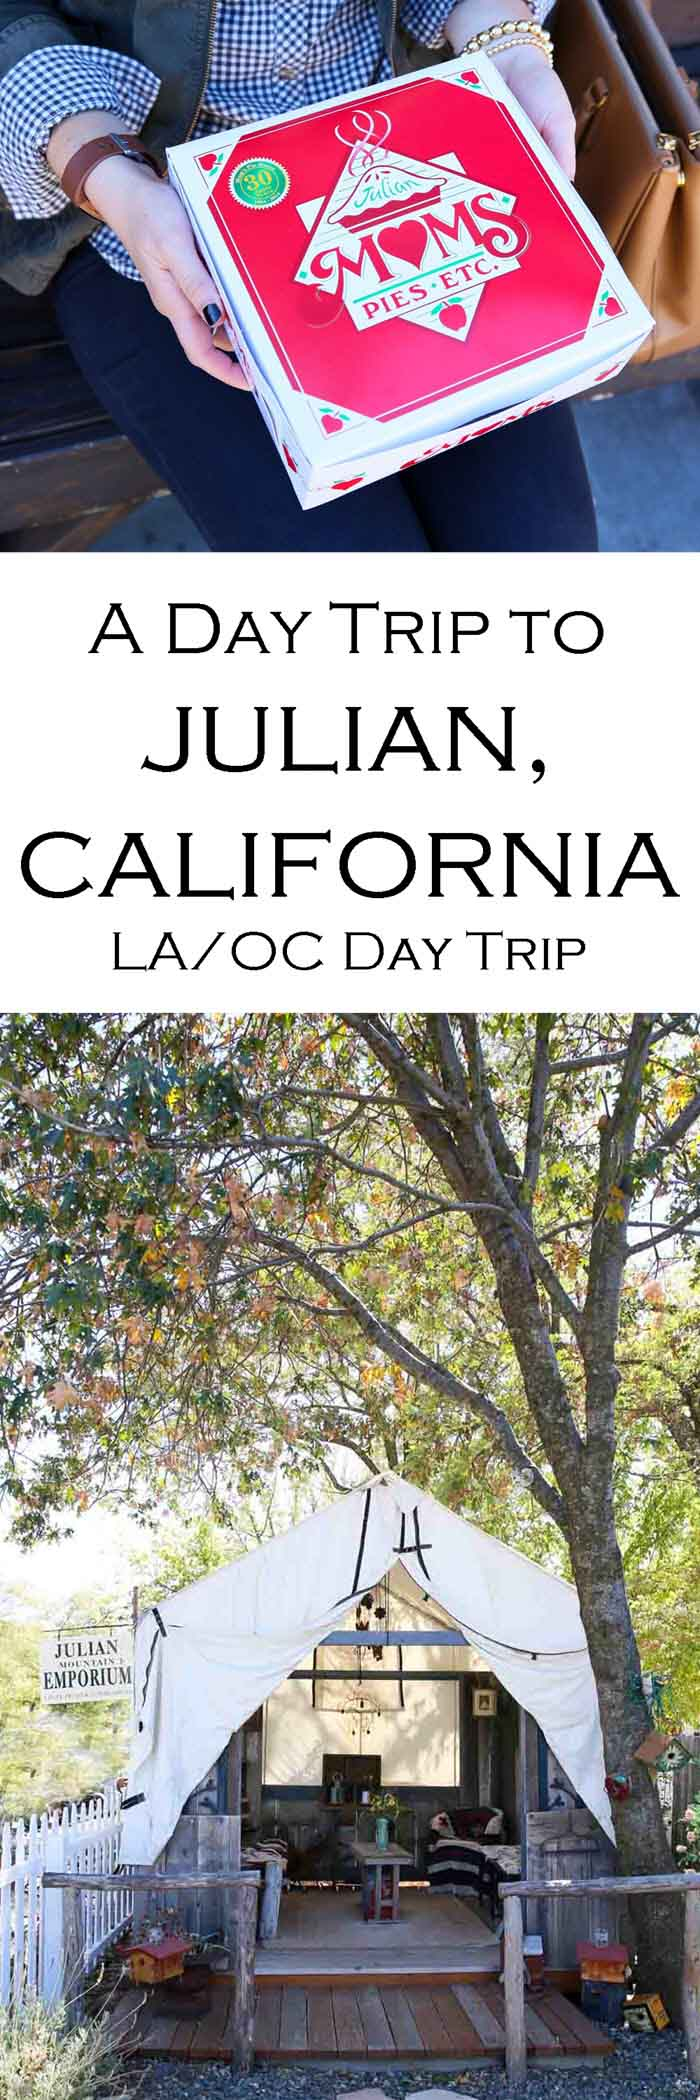 What to Do Julian, California Day Trip from Los Angeles #losangeles #orangecounty #daytrip #southerncalifornia #travelblogger